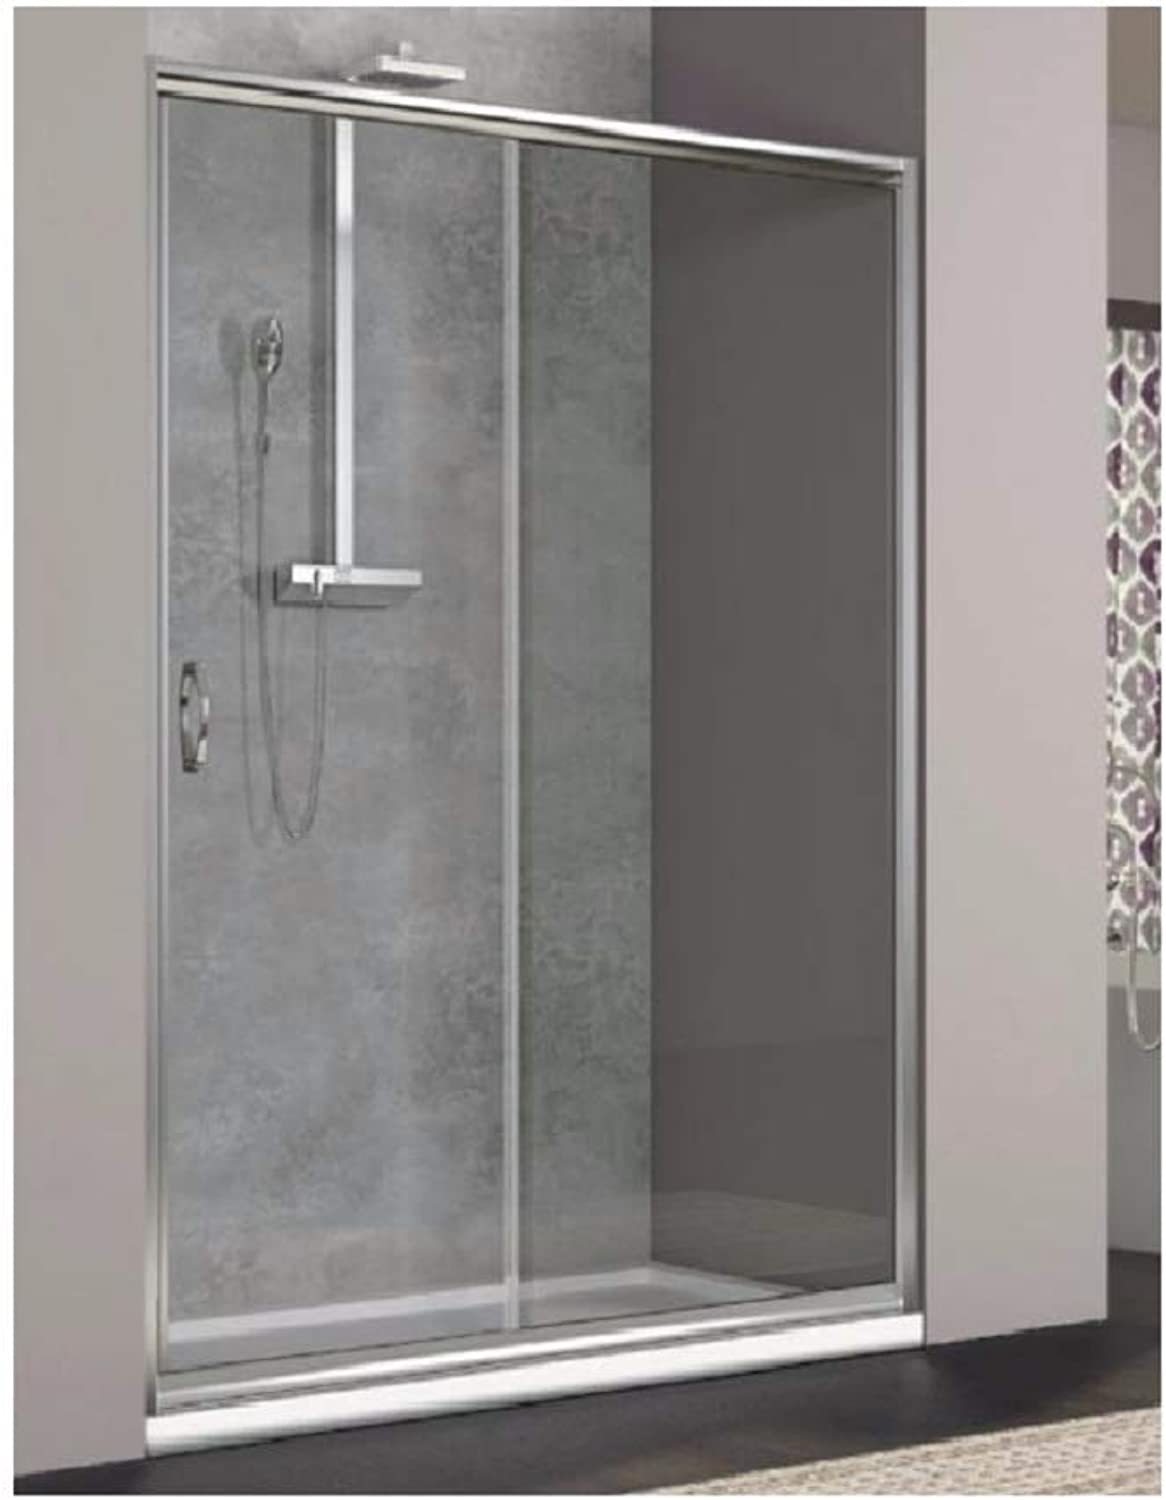 Shower Screen 6?mm Tempered Glass Transparent For A Side Of The Place Of Side Doors Sliding?–?Reversible Left Right Width 100?cm, height 185?cm